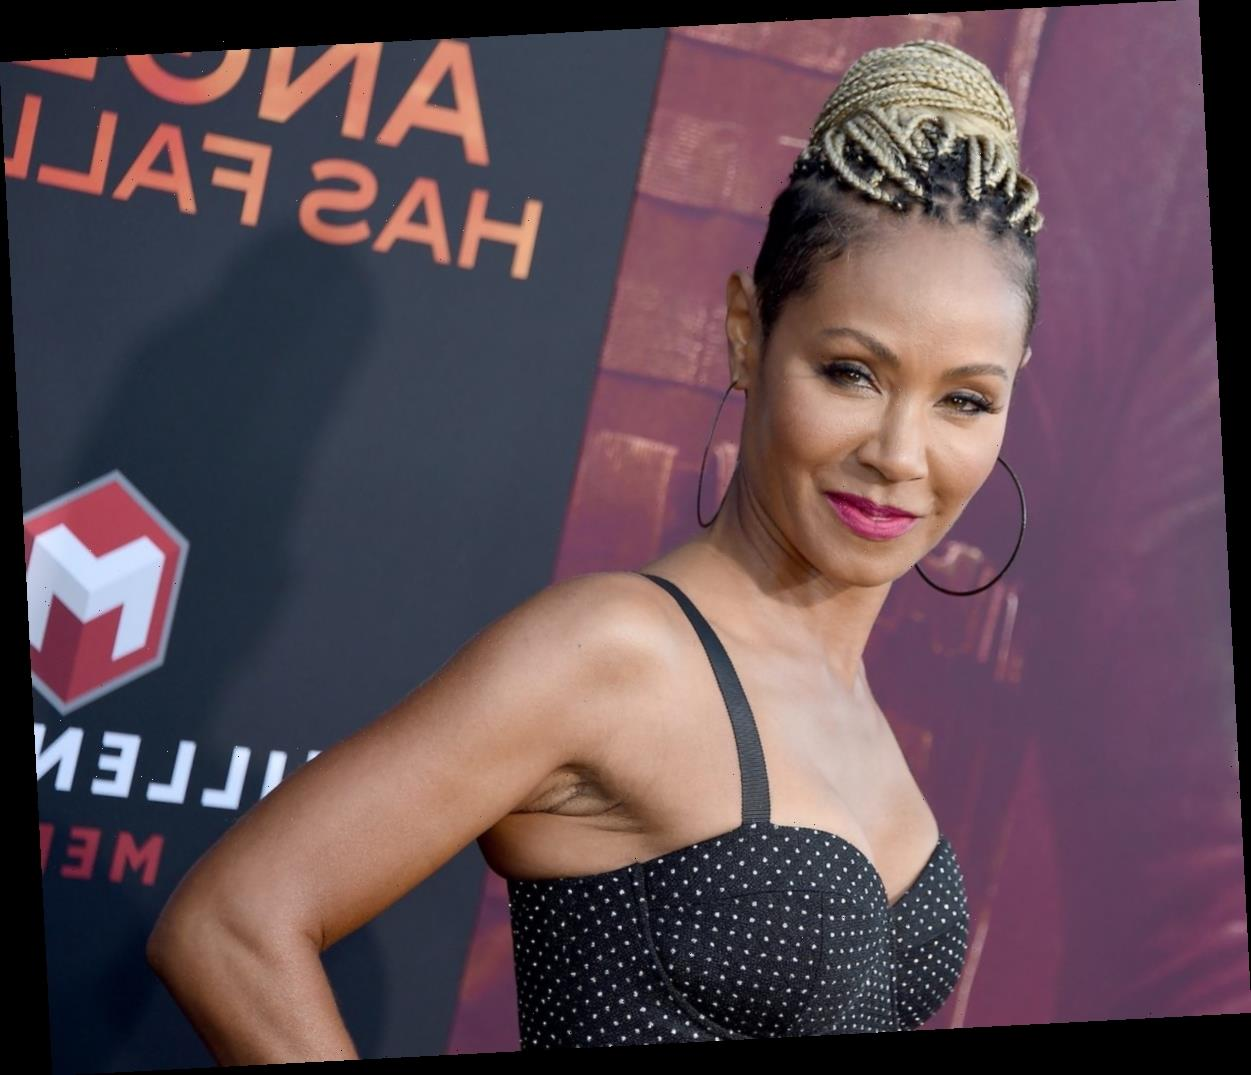 Is Jada Pinkett Smith in 'The Matrix'?